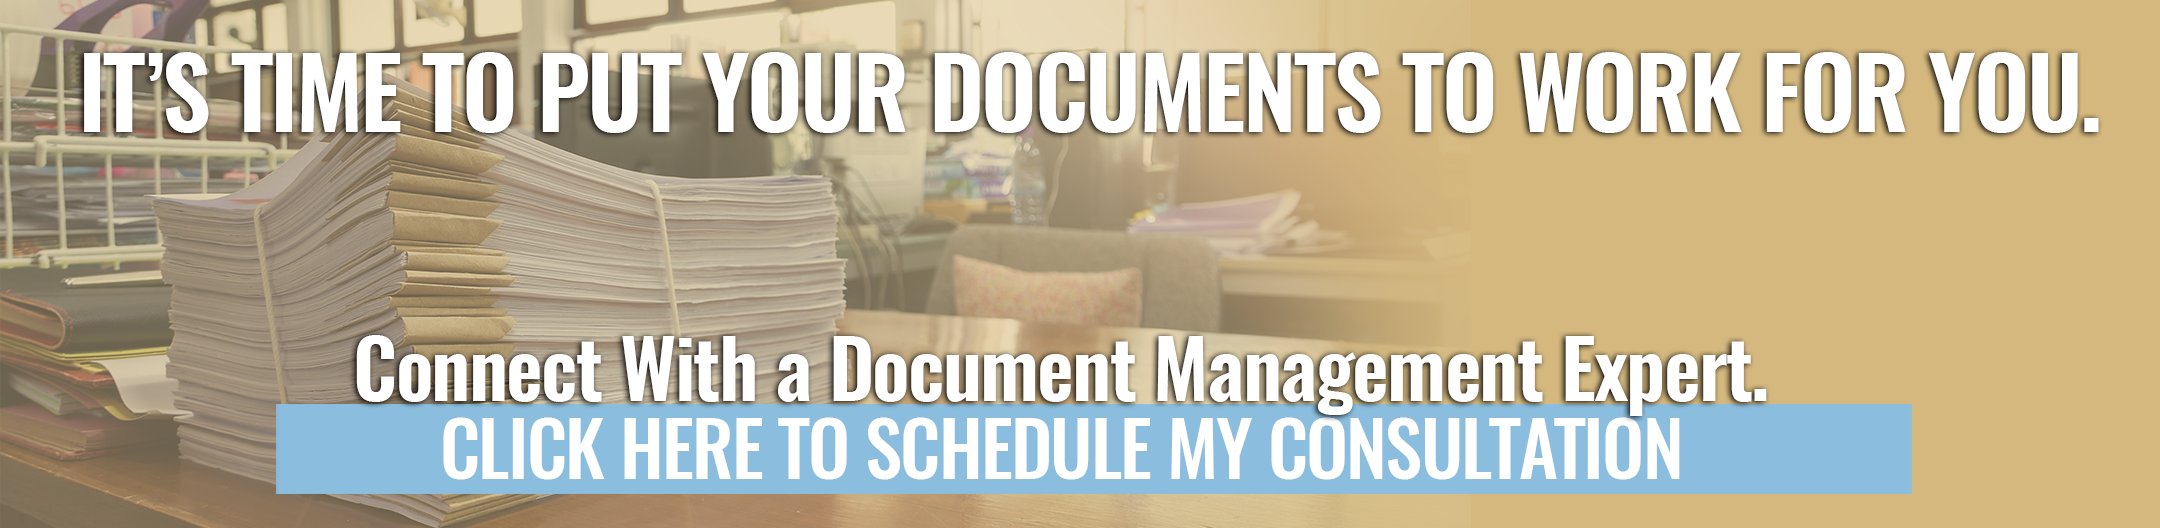 It's time to put your documents to work for you. Click here to schedule a consultation with a Document Management Expert.